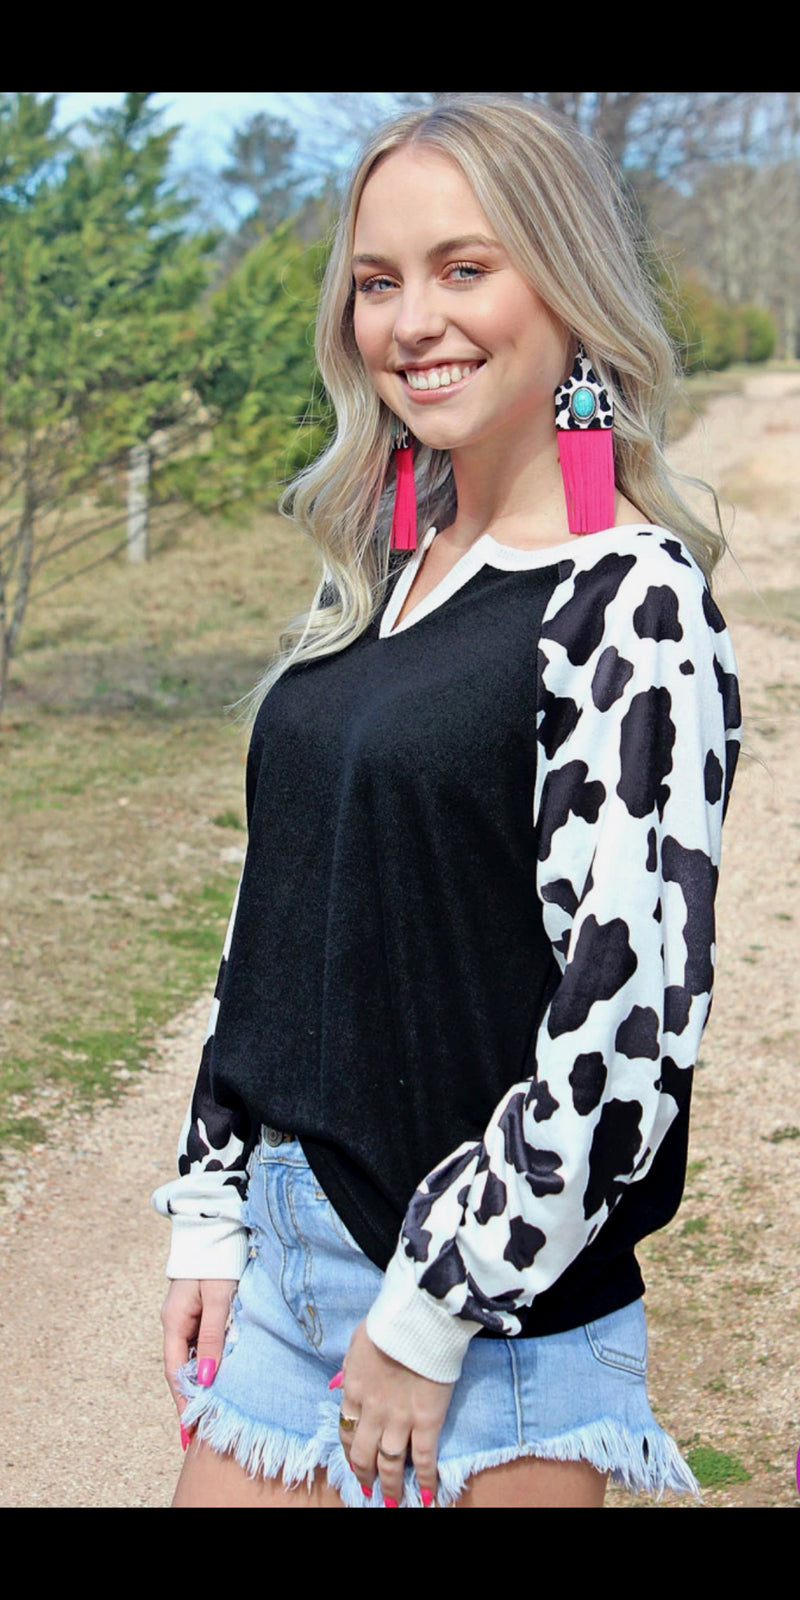 StockYards Cowprint Top - Also in Plus Size